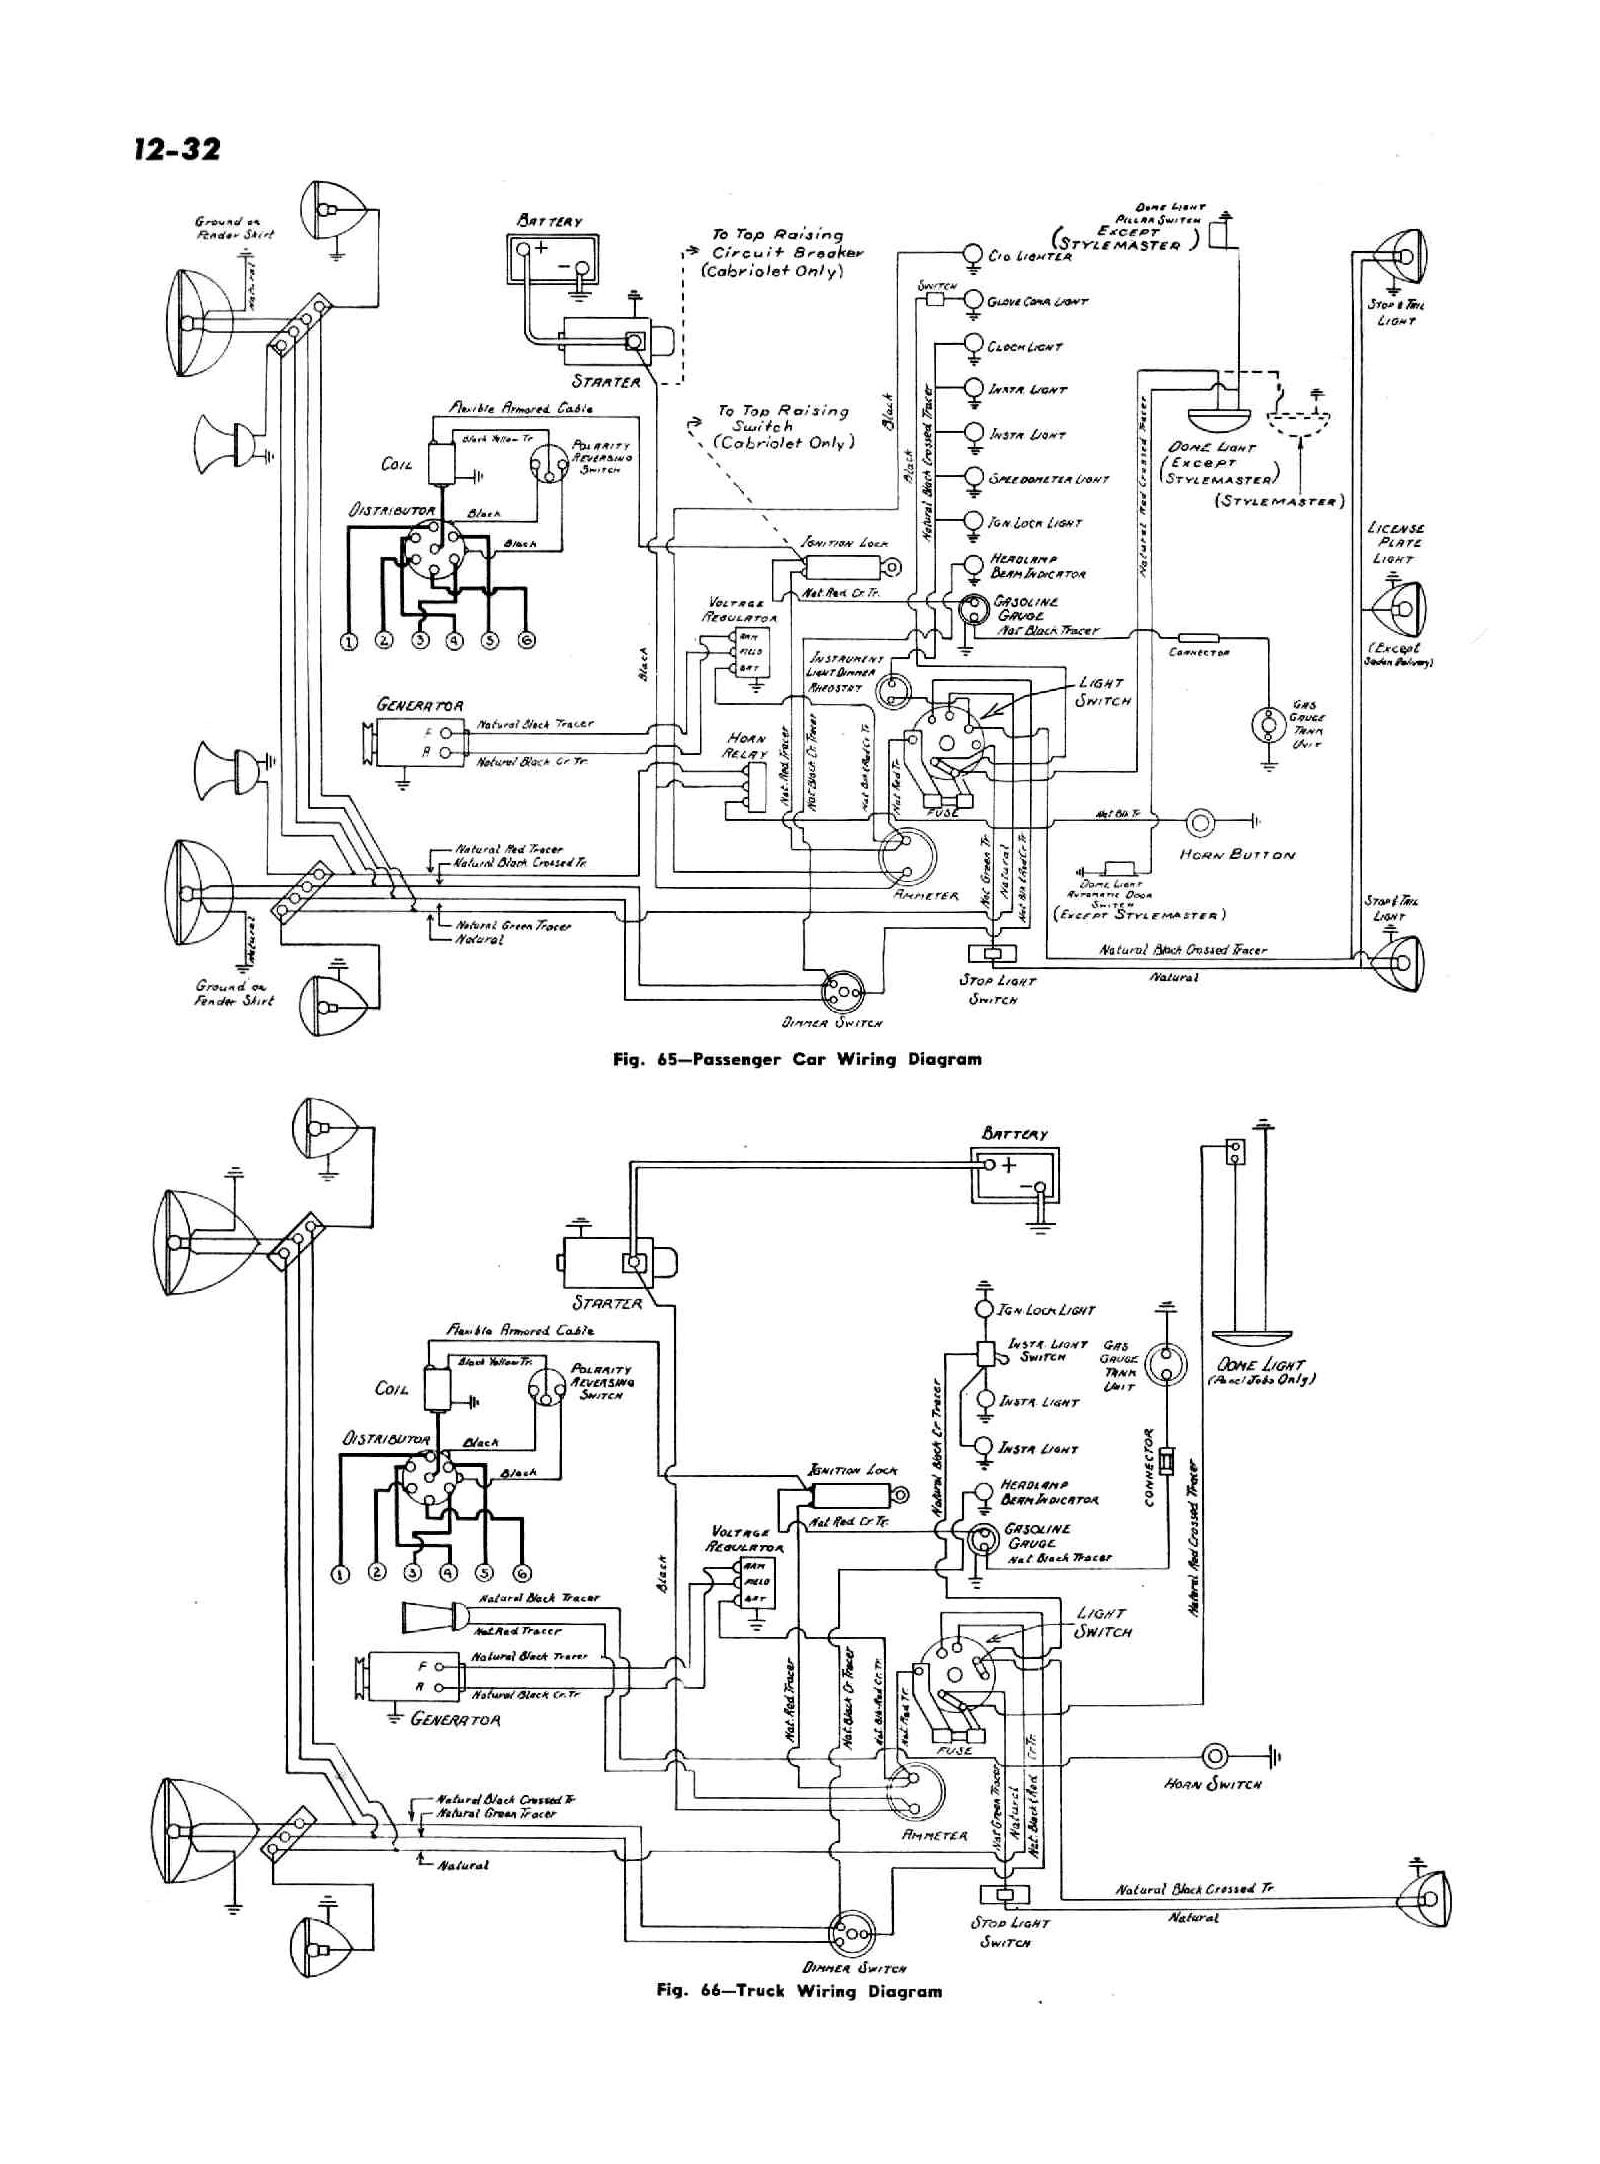 Car Wiring Diagrams Schematic Bulldog Vehicle Remote Start